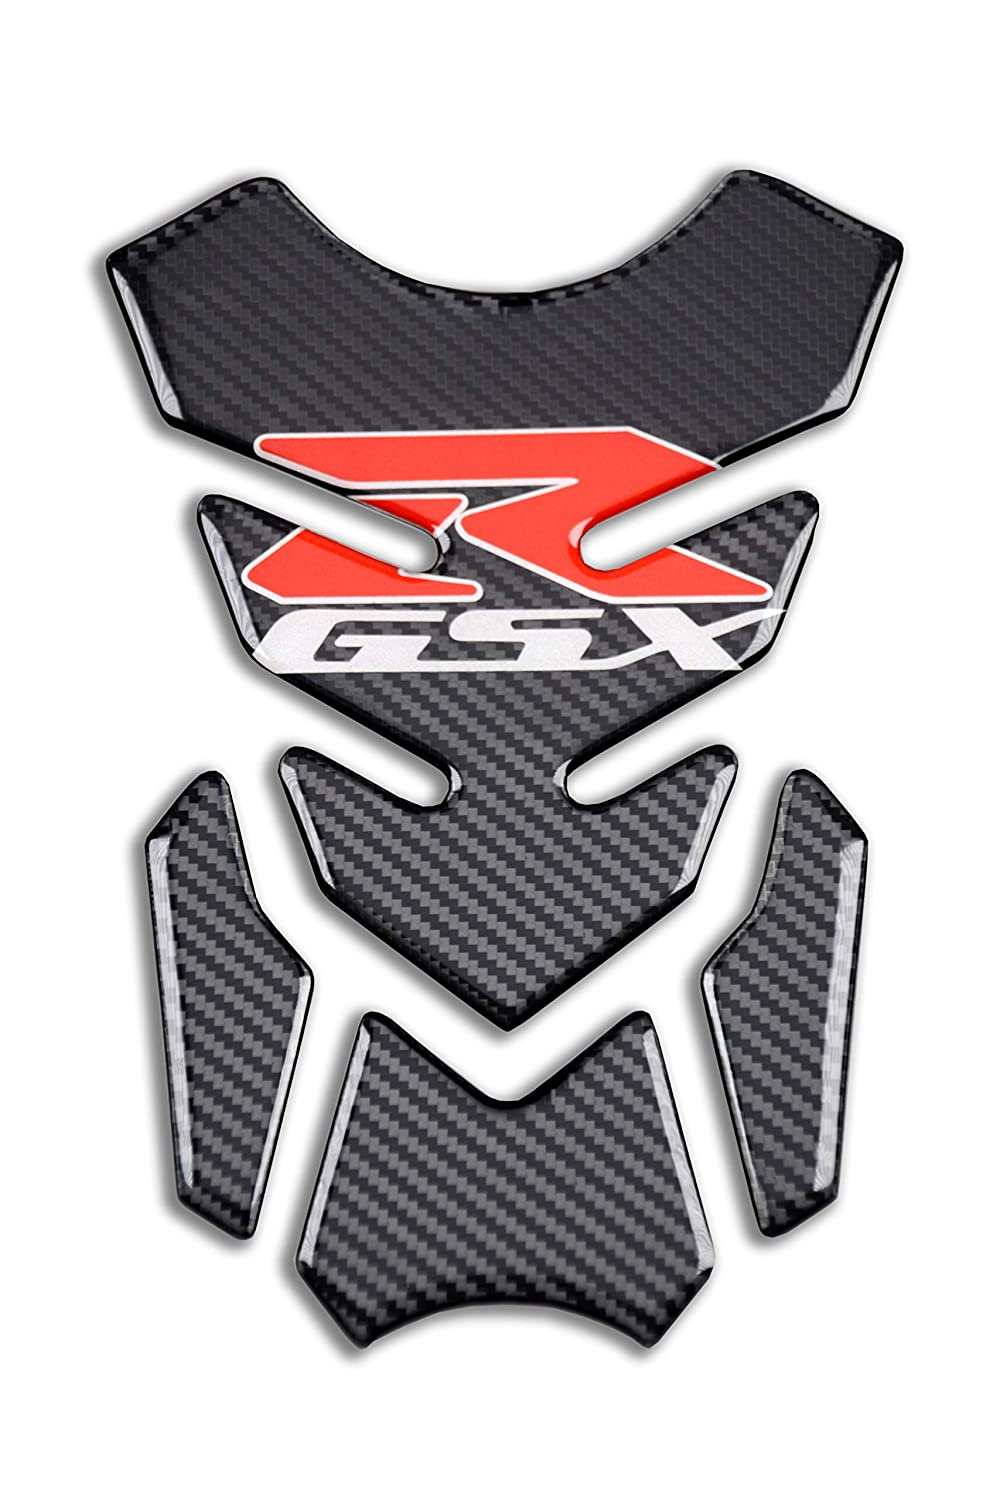 Motorcycle Real Carbon Look Vinyl Decal Emblem Protection Reflective Gas Tank Pad Tank Protector For SUZUKI Gixxer GSXR 600 750 2006-2016 / GSXR1000 2007-2008 GSXR1300 Hayabusa 2008-2016